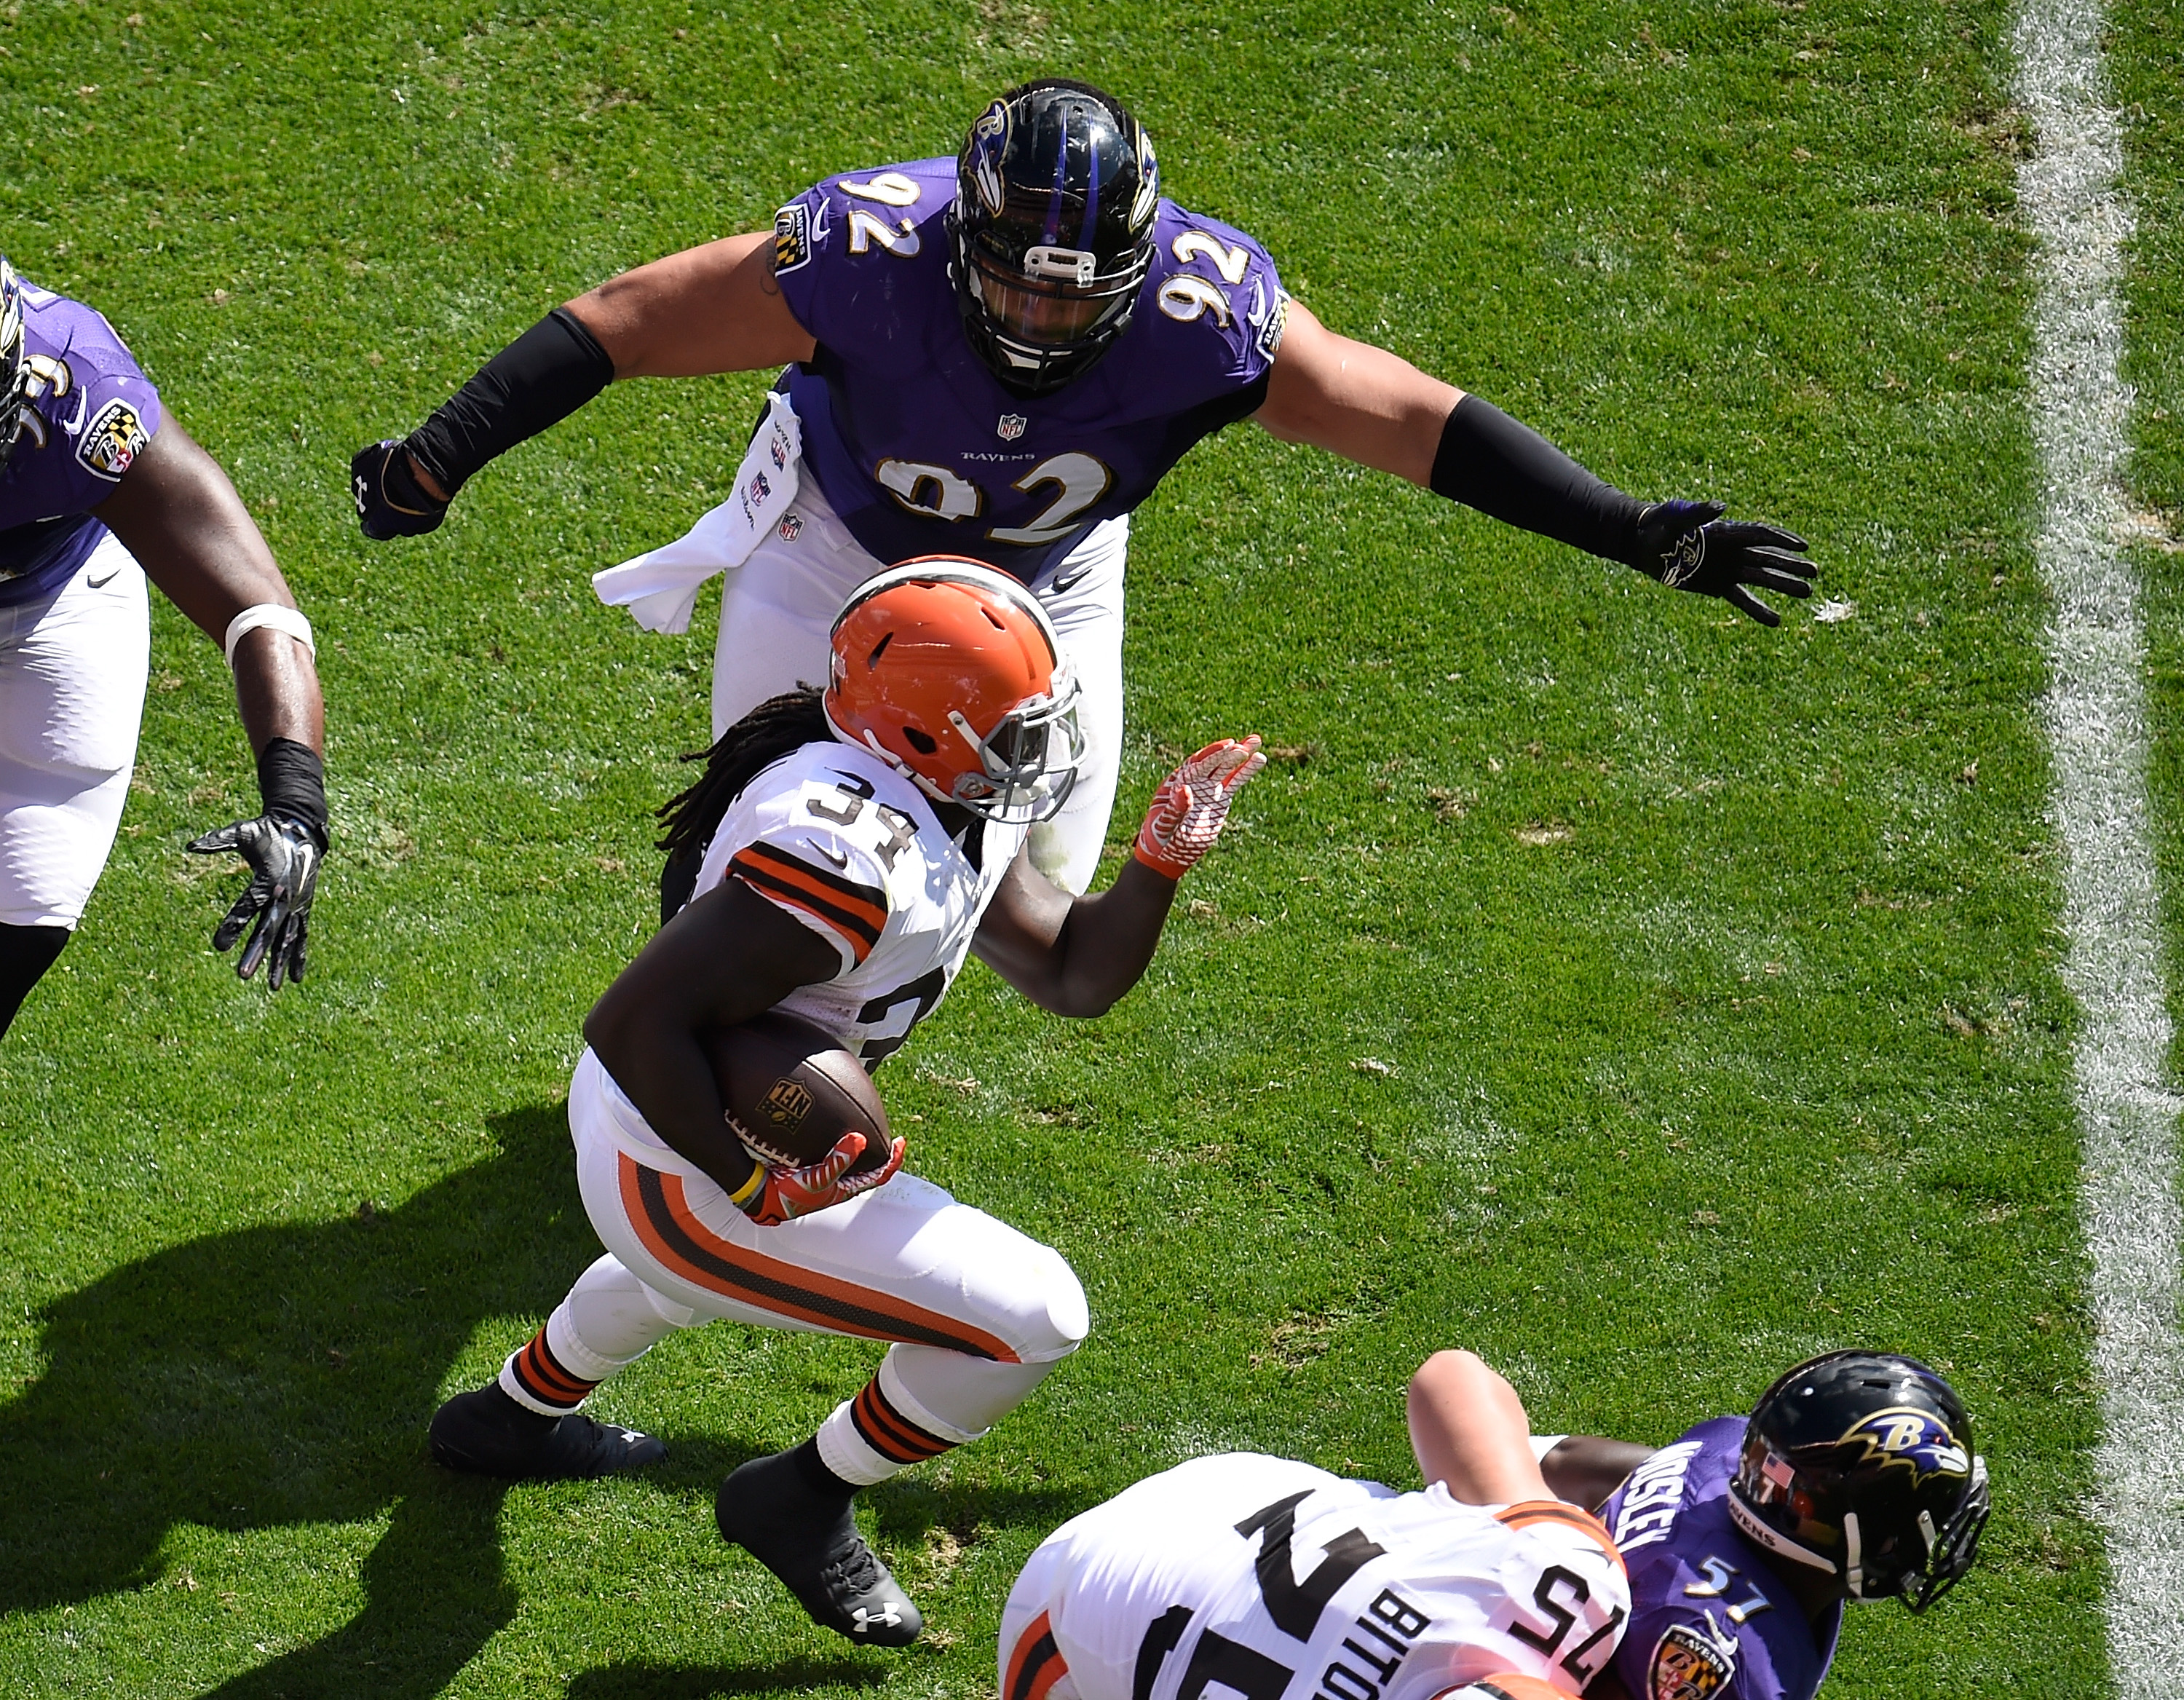 Eagles agree to one-year deal with NT Ngata